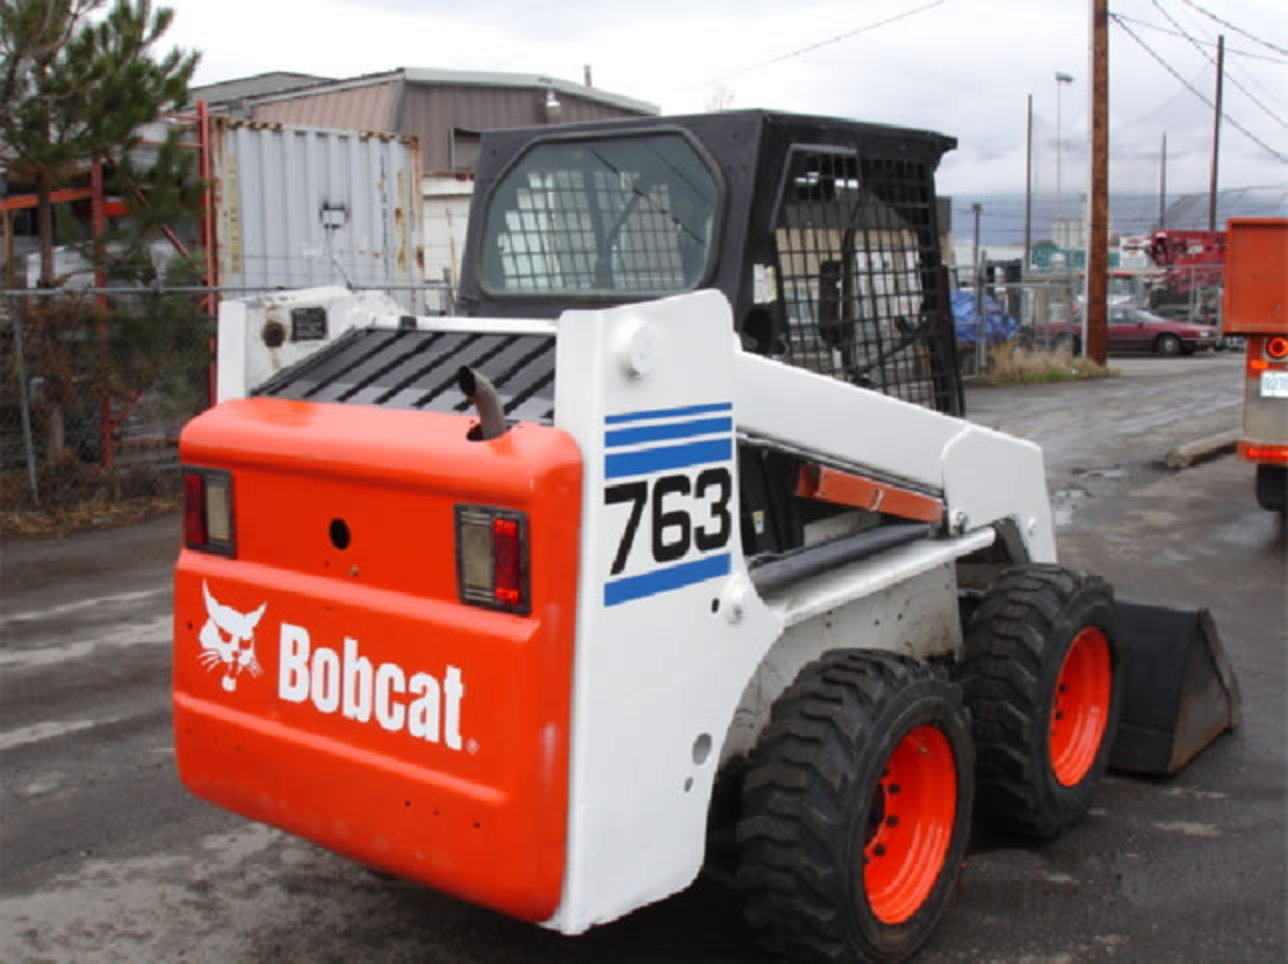 Swiss Skid Steer Solutions | Equipment for Sale